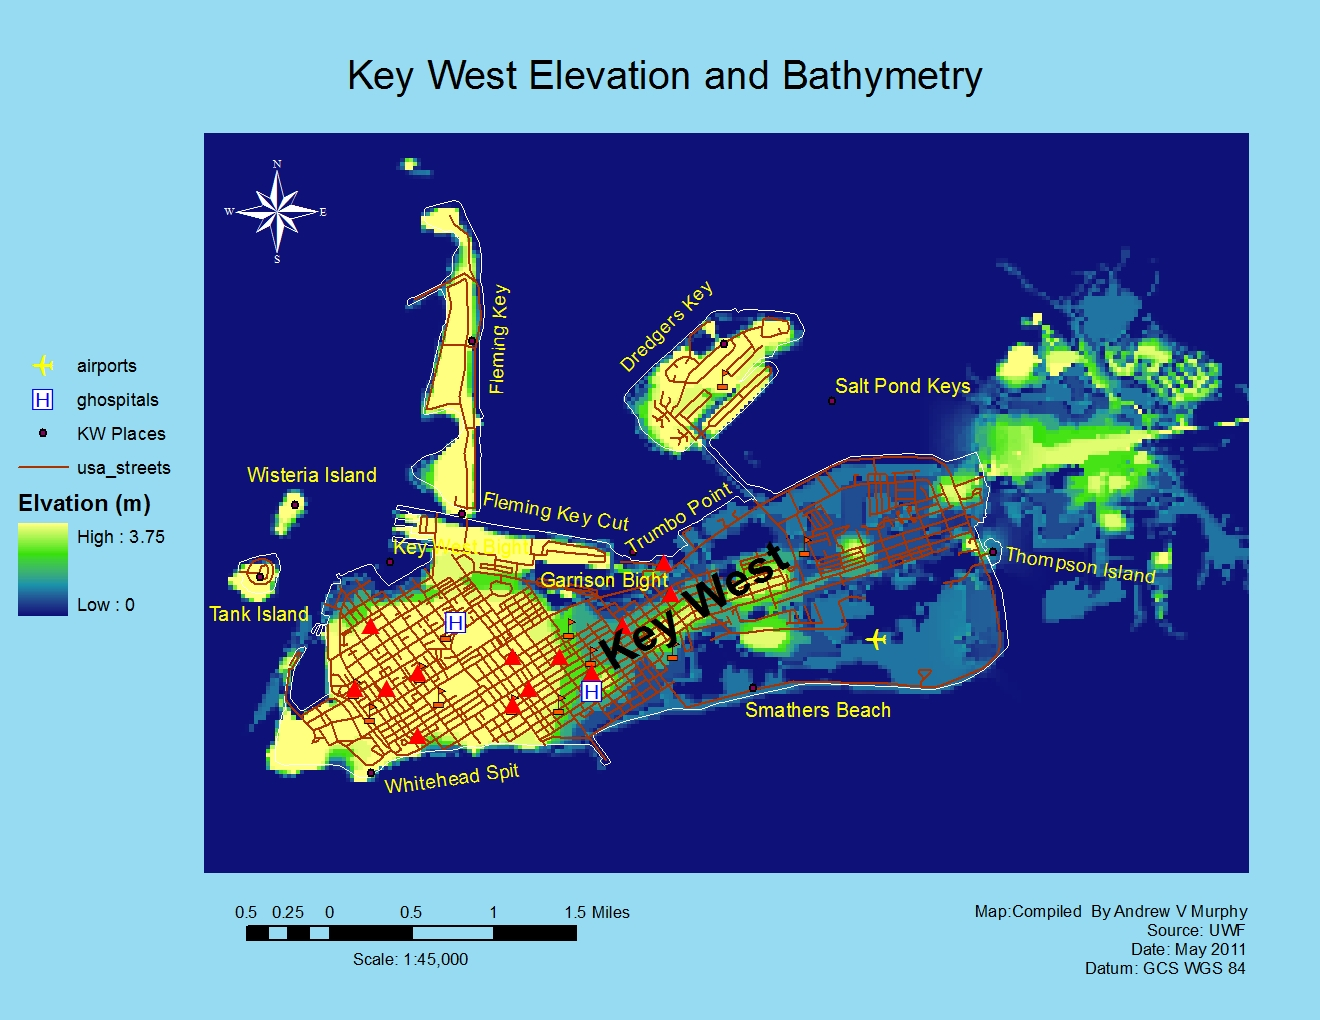 Applications in GIS: Hurricane (A Study of Wilma effects in Key